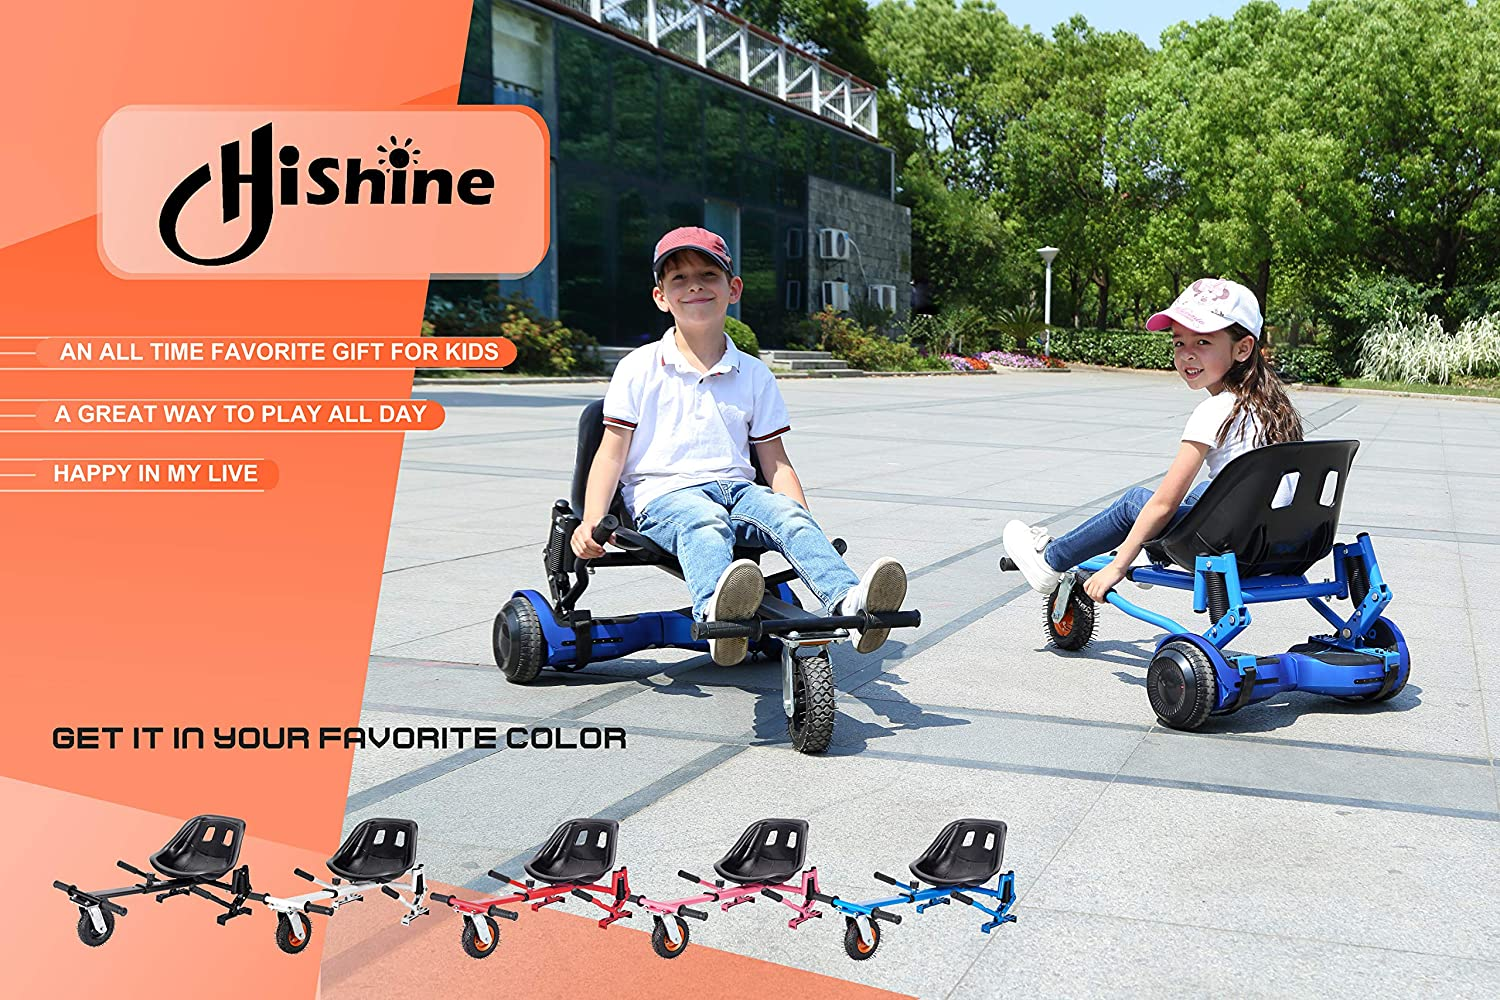 Hoverboard Go Cart Accessories hishine gk Upguade Hoverboard Seat Attachment Go Kart Heavy Duty Flame Fun for Kids Fits 6.5//8//10